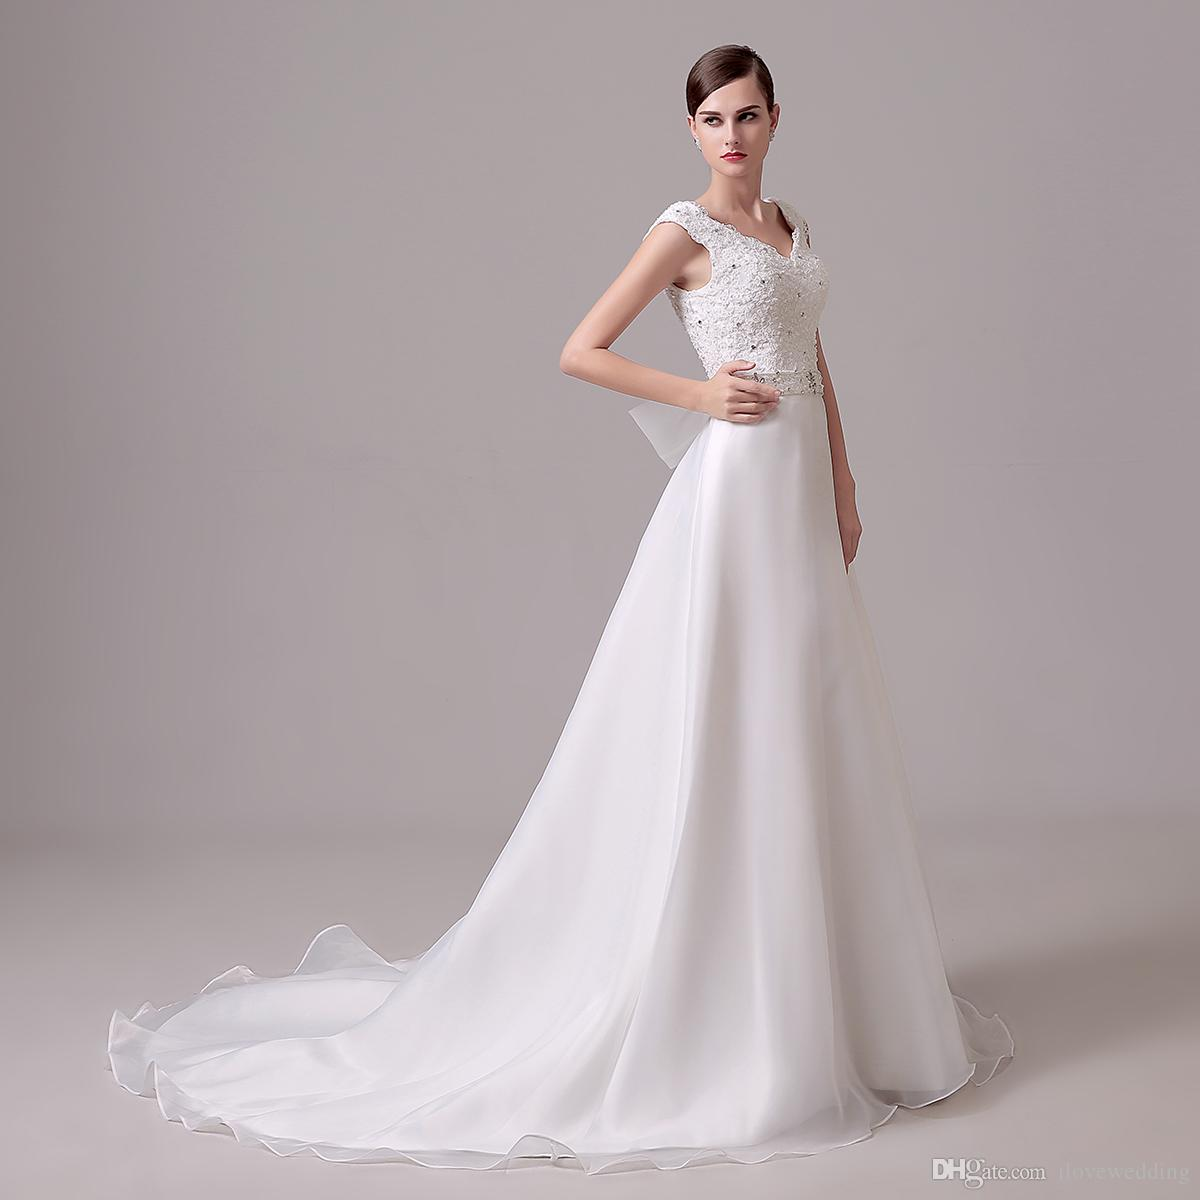 Discount Bridal Gowns: Discount Cheap Under 100 Full Length Wedding Dresses